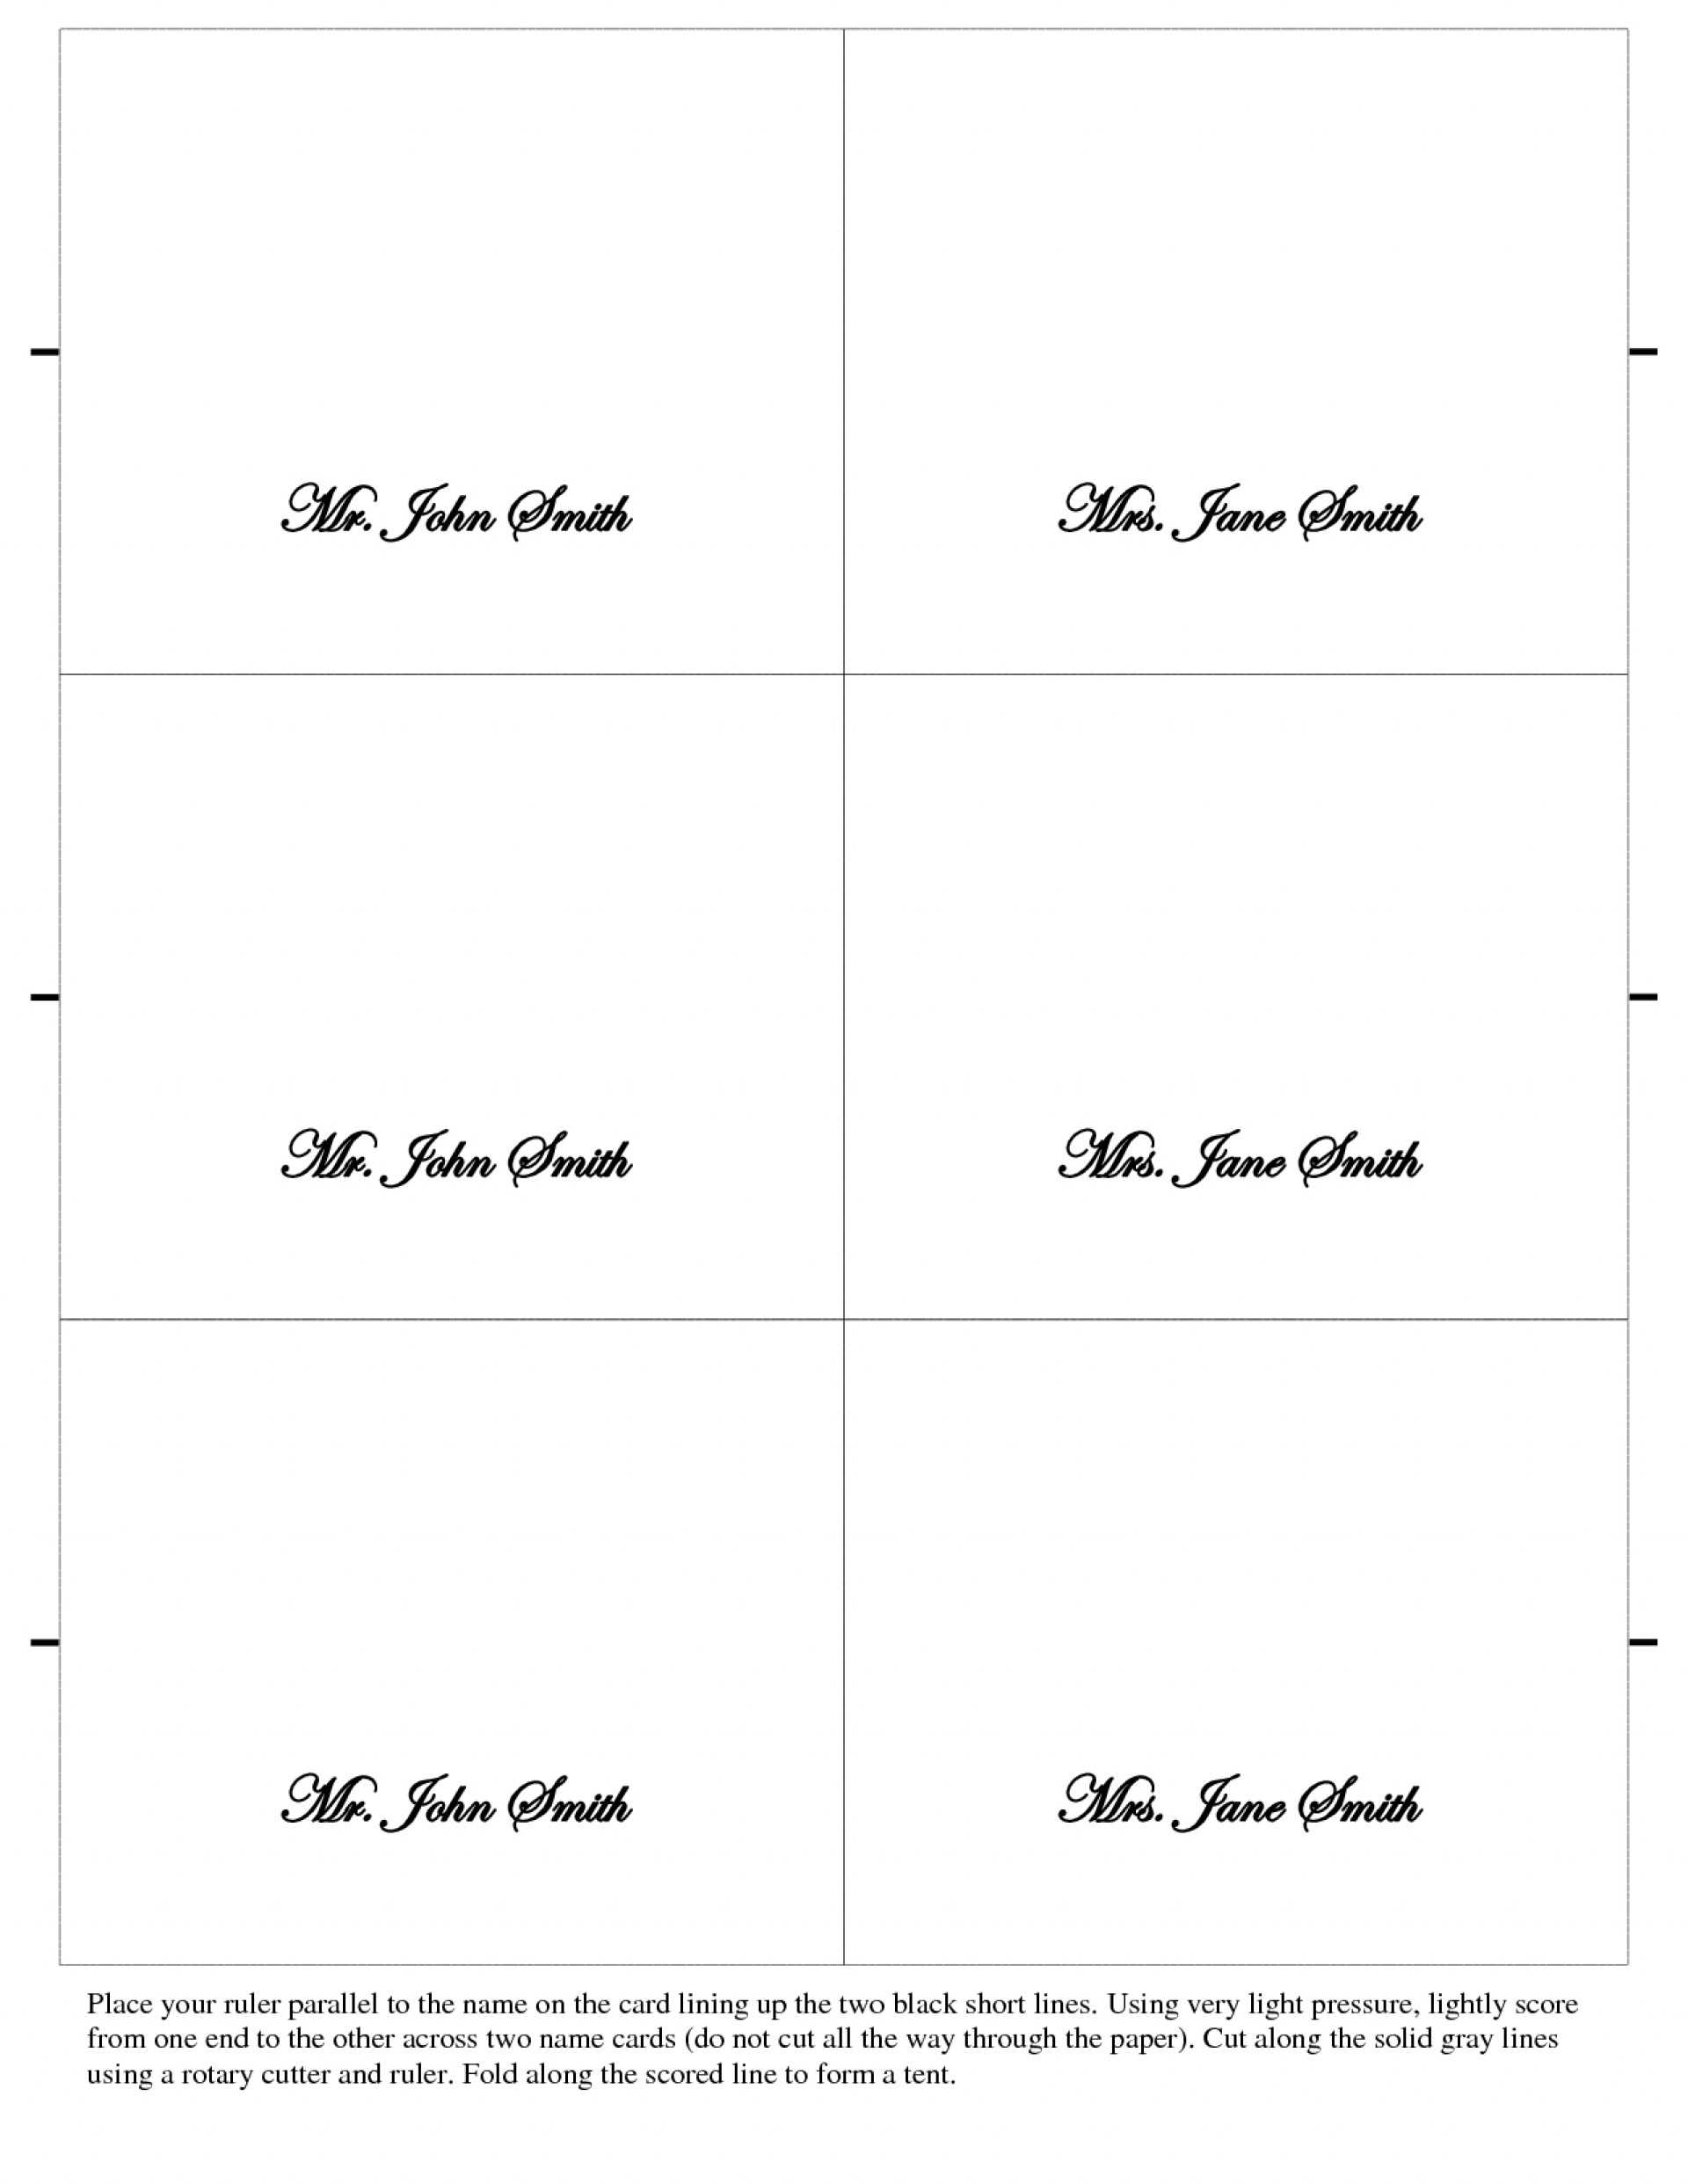 Place Setting Card Template Word - Zohre.horizonconsulting.co For Fold Over Place Card Template